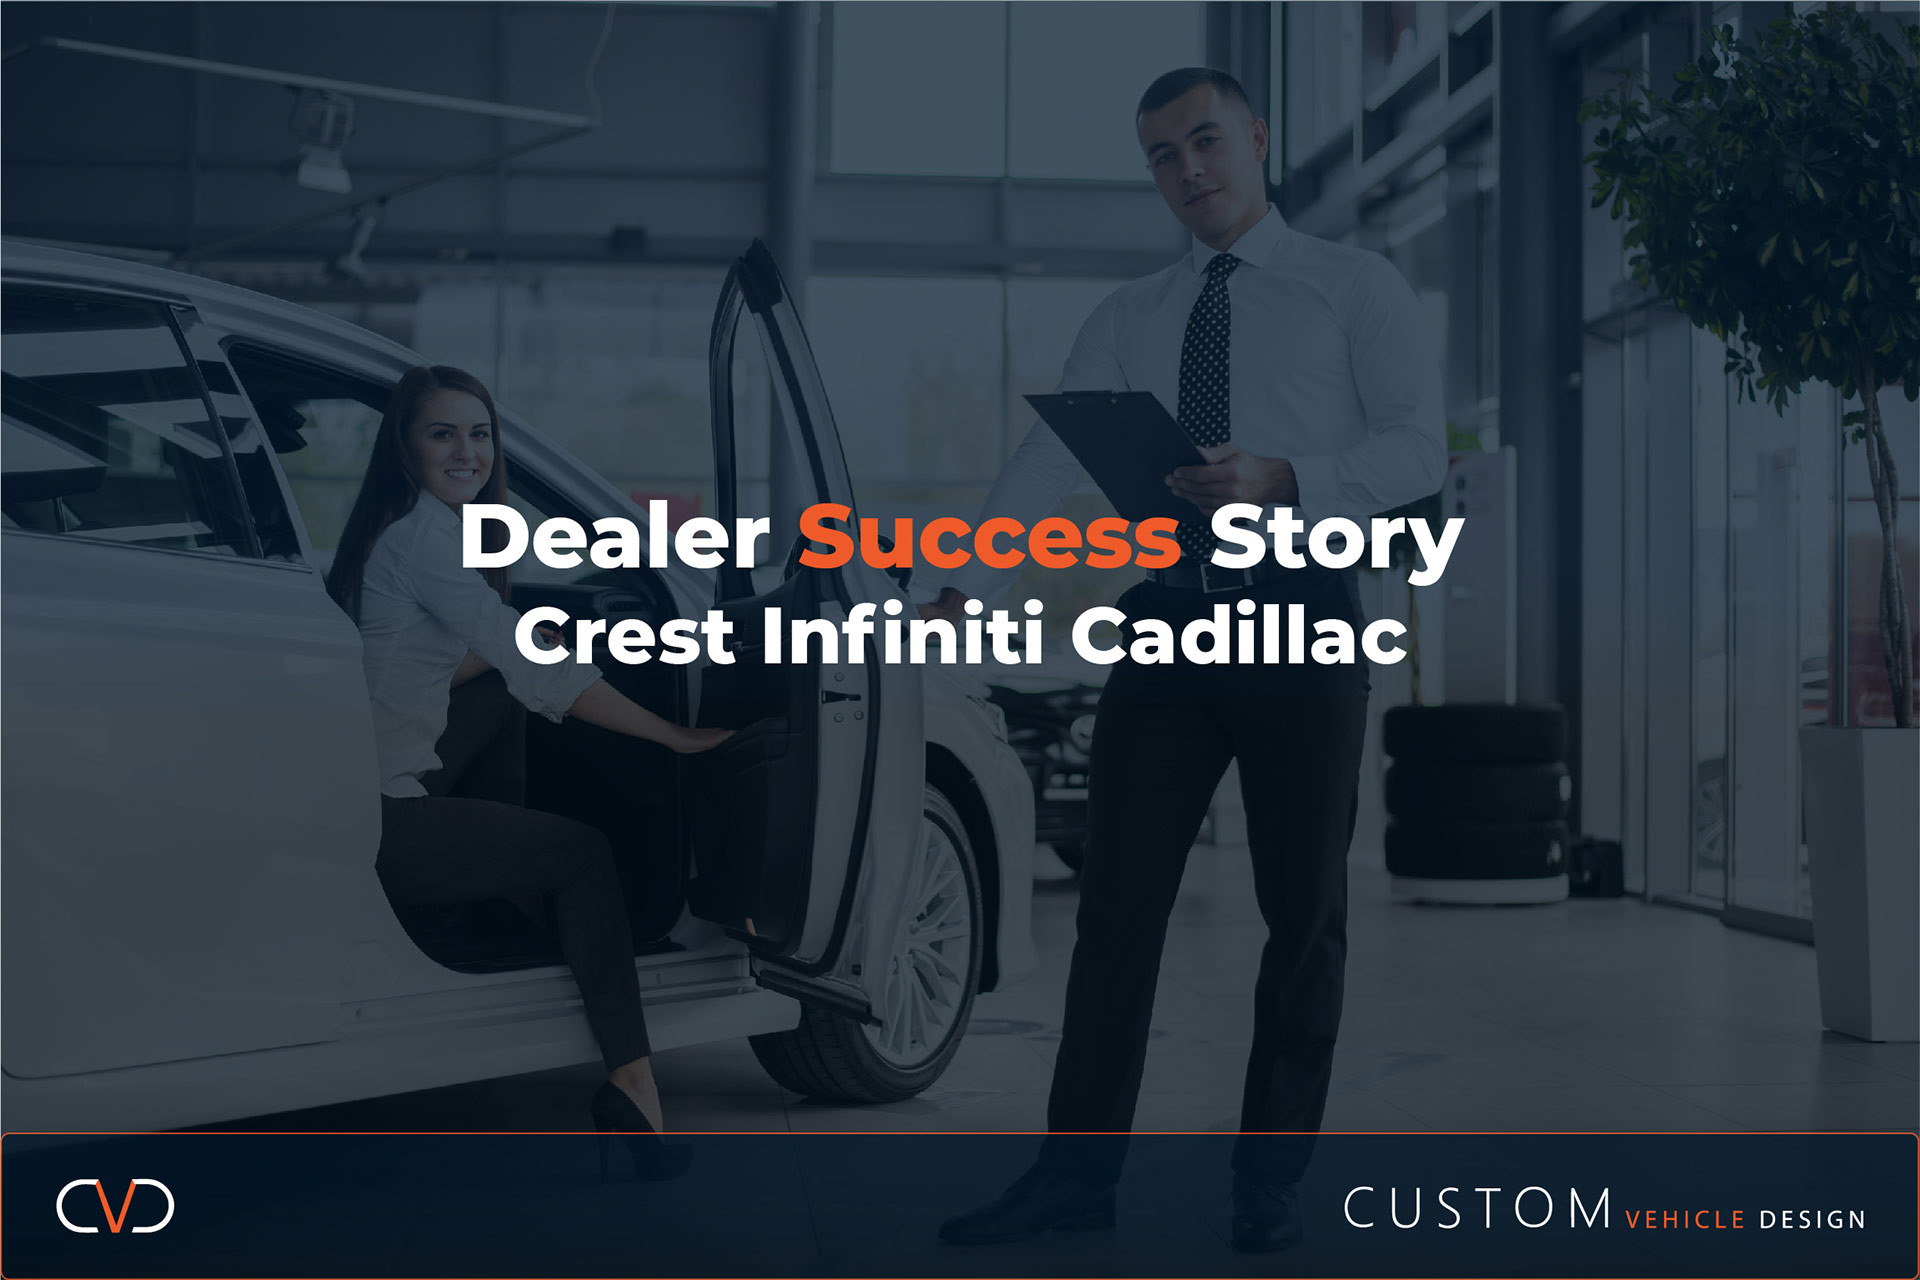 Auto Accessories: Dealer Success Story - Crest Infiniti Cadillac, Frisco, TX On Track To Exceed $1.5 Million In Aftermarket Sales